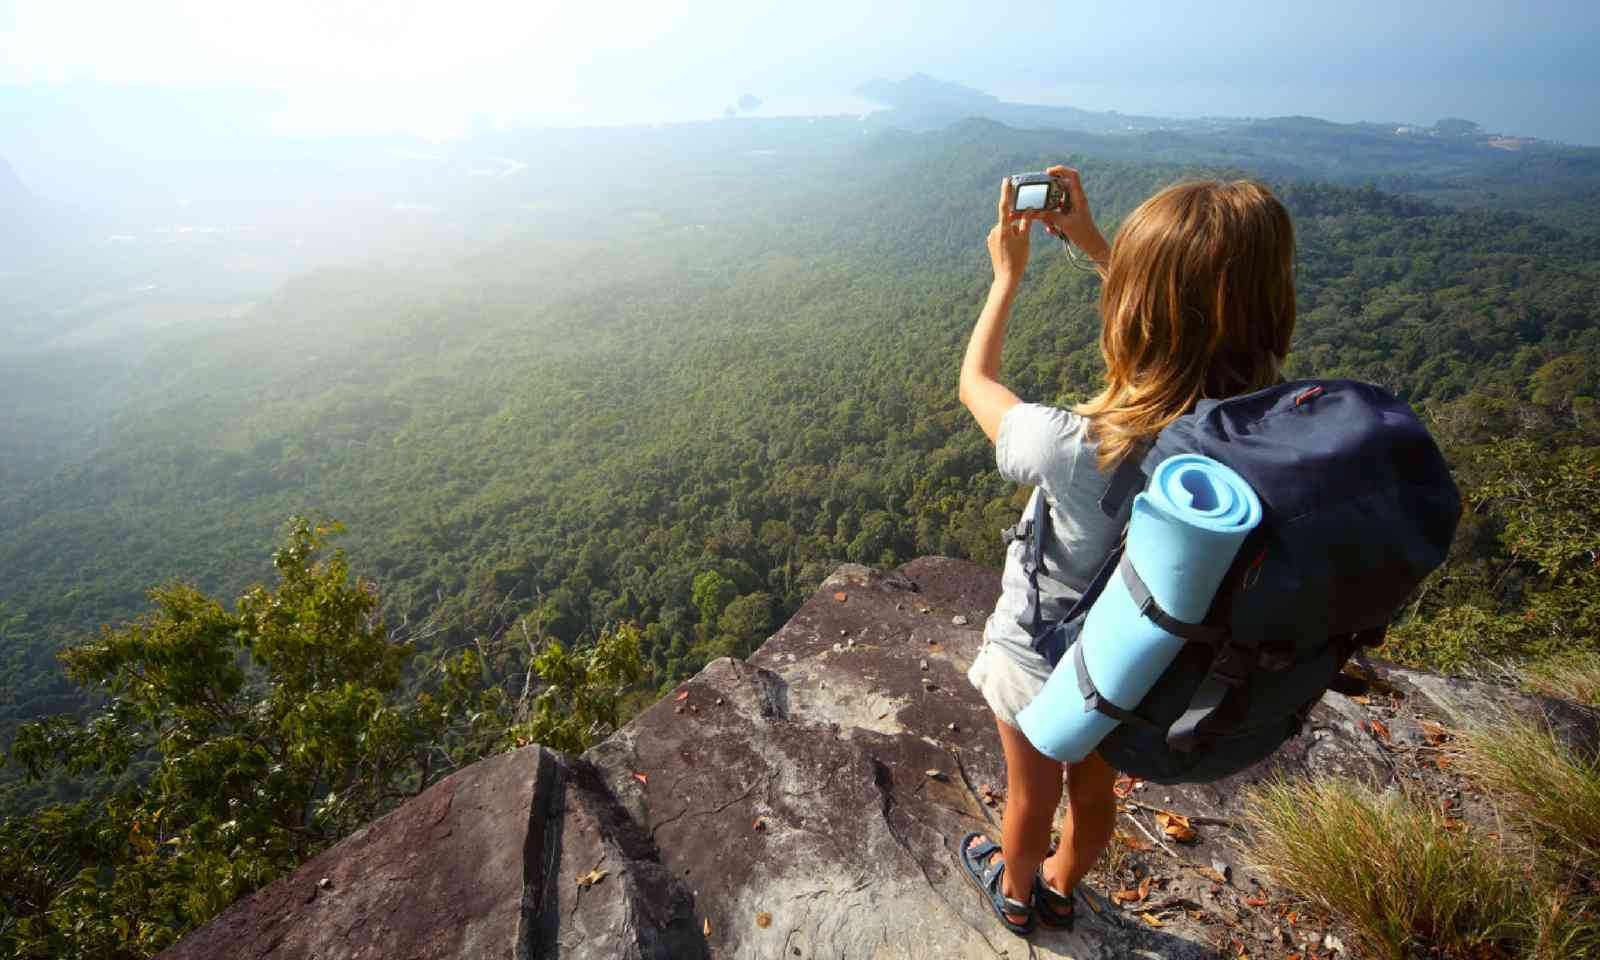 Taking photos on a cliff edge (Shutterstock)